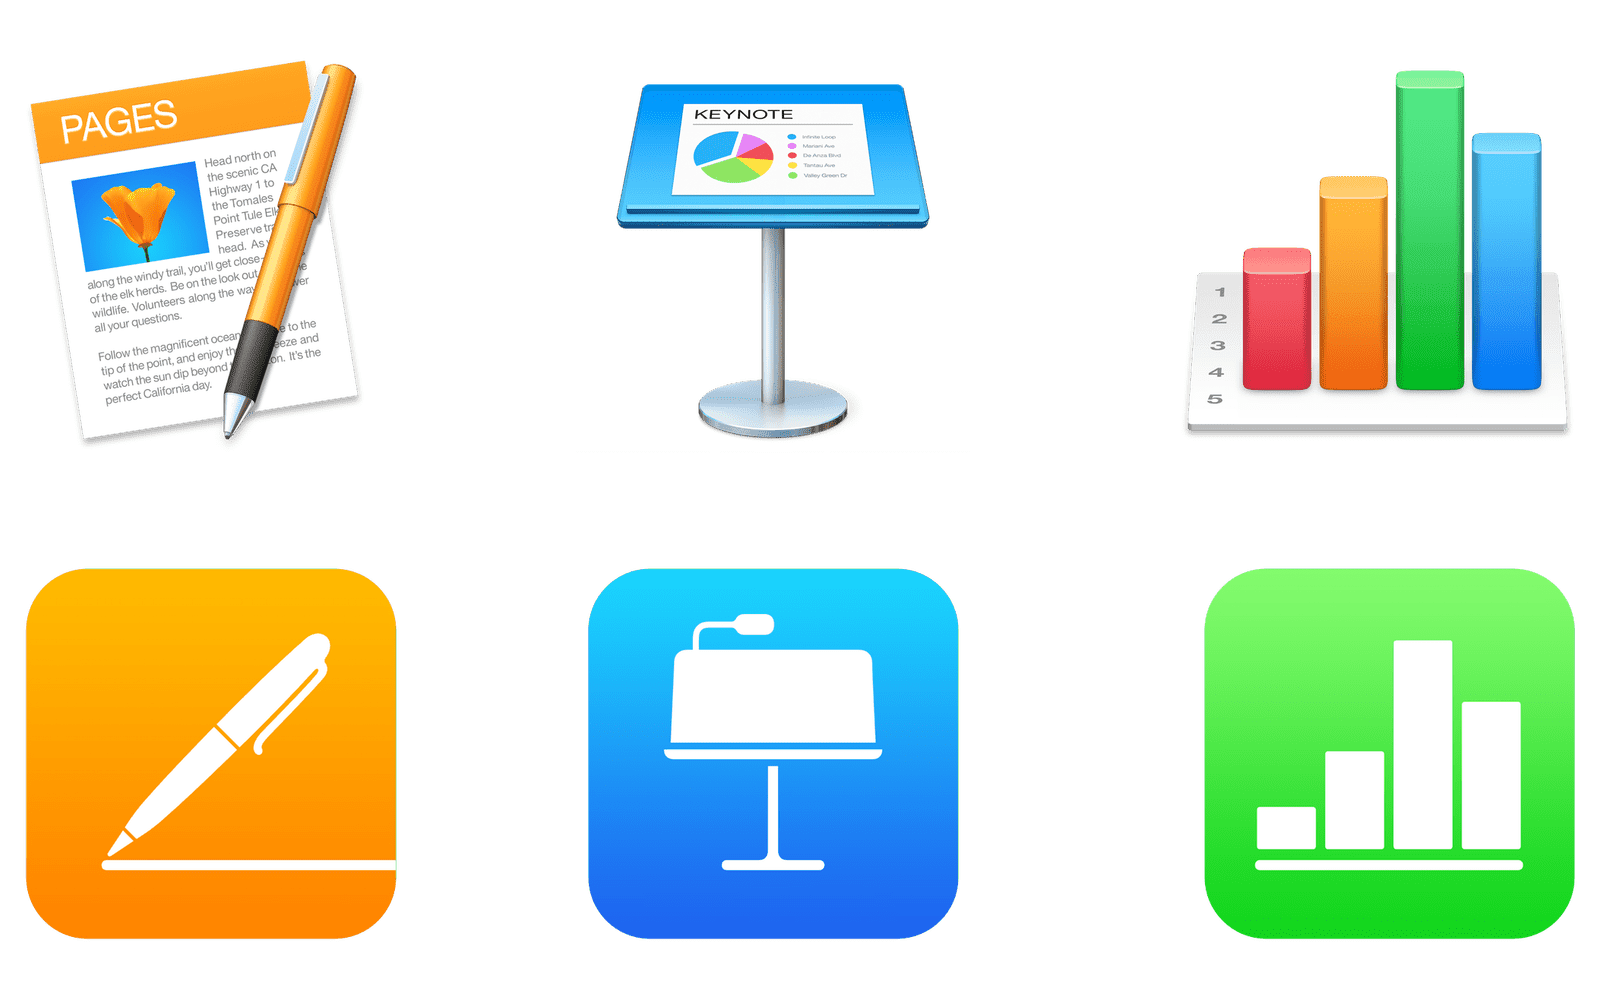 The iWork suite logo